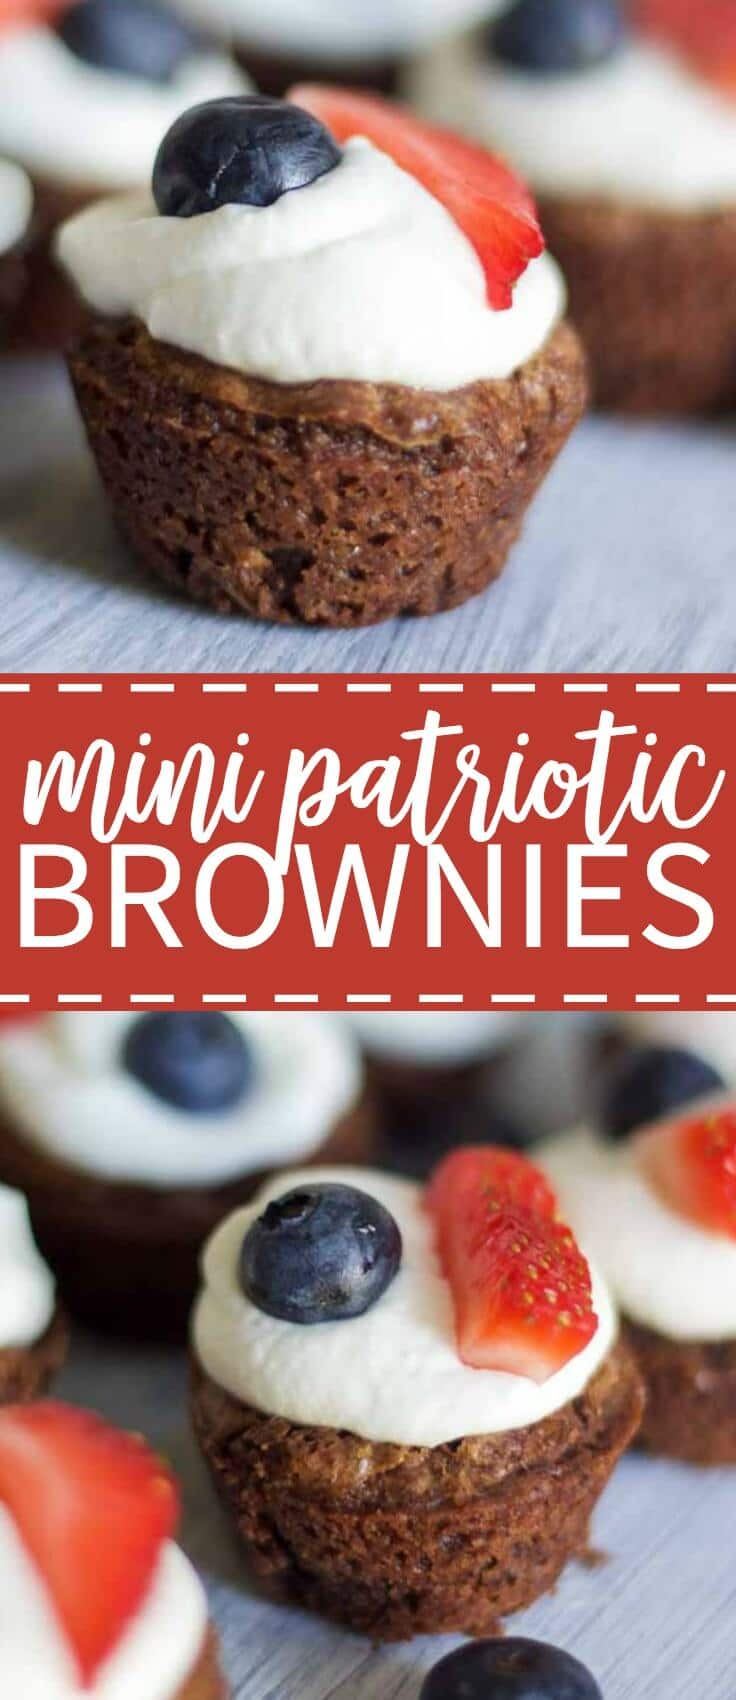 The bite-sized desserts, patriotic recipes and Fourth of July celebrations are upon us! And these mini patriotic brownies fit the bill. With just the right amount of chocolate and chewiness, these little guys satisfy chocolate cravings in one bite. And the sweet topping with fresh fruit is just perfect, and I couldn't love it more.